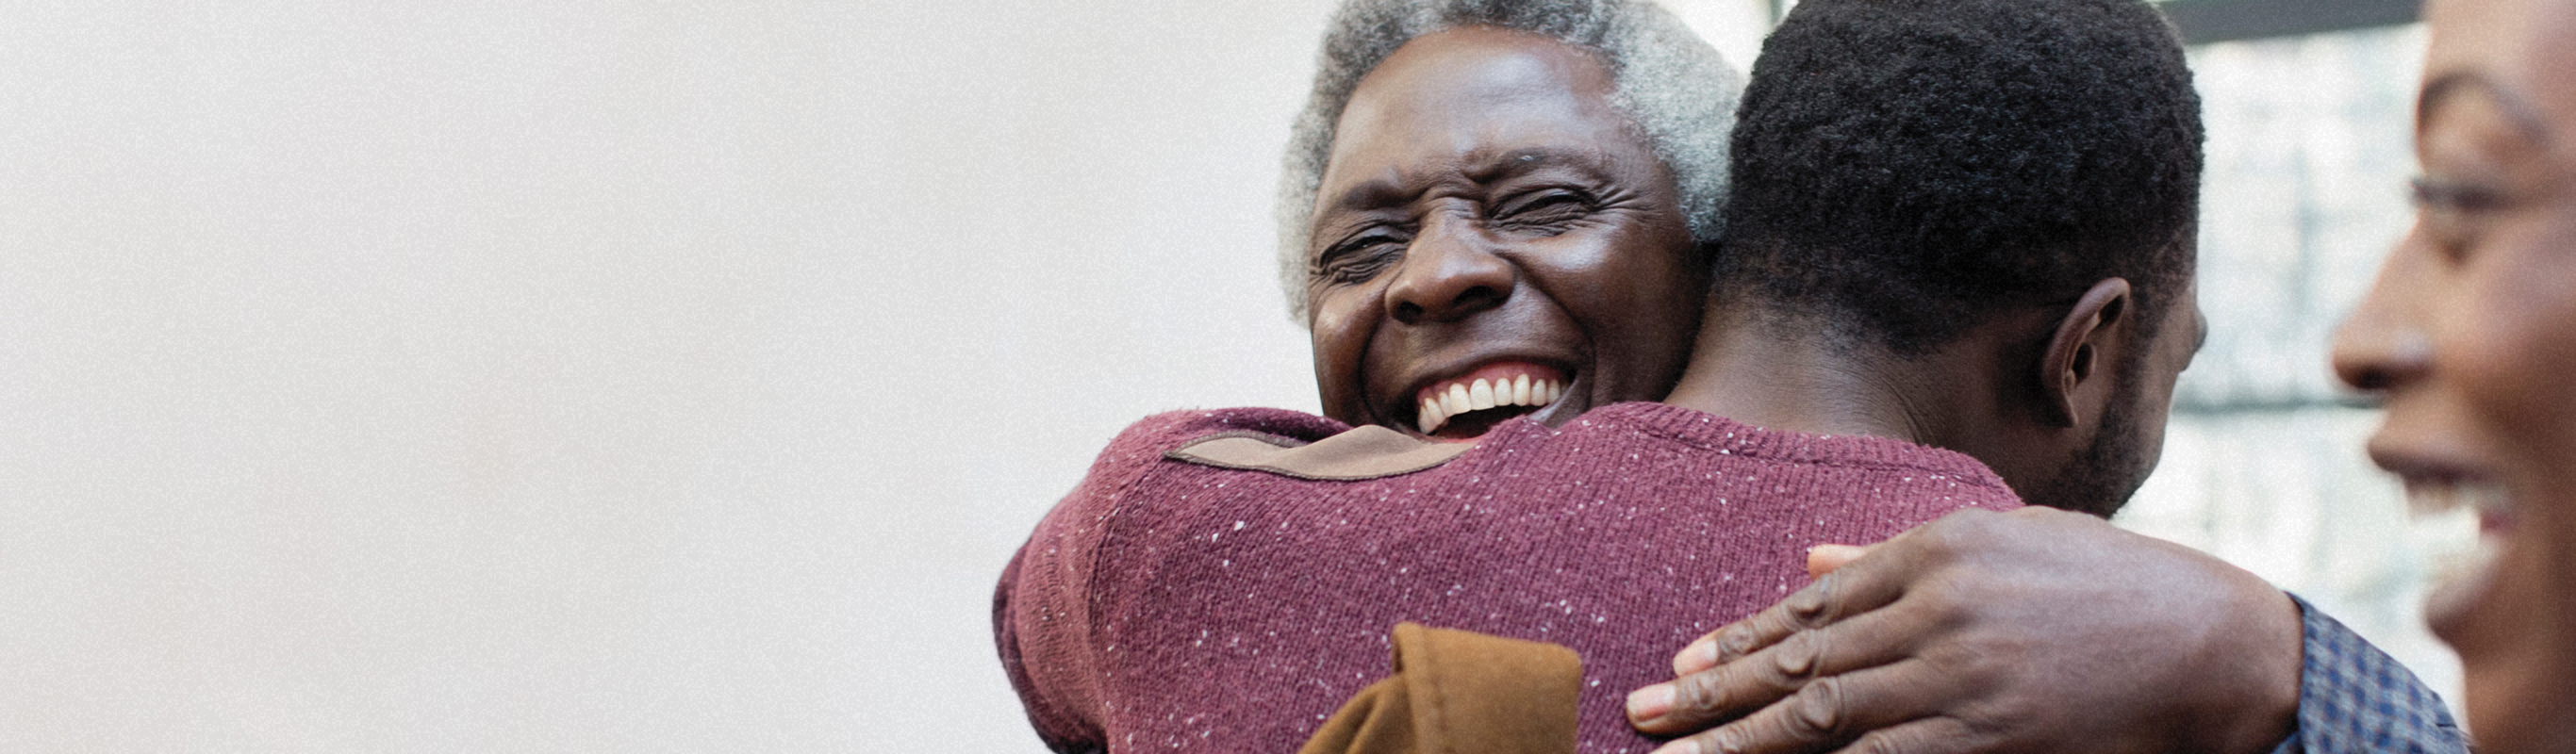 Man with gray hair embracing other man, smiling.